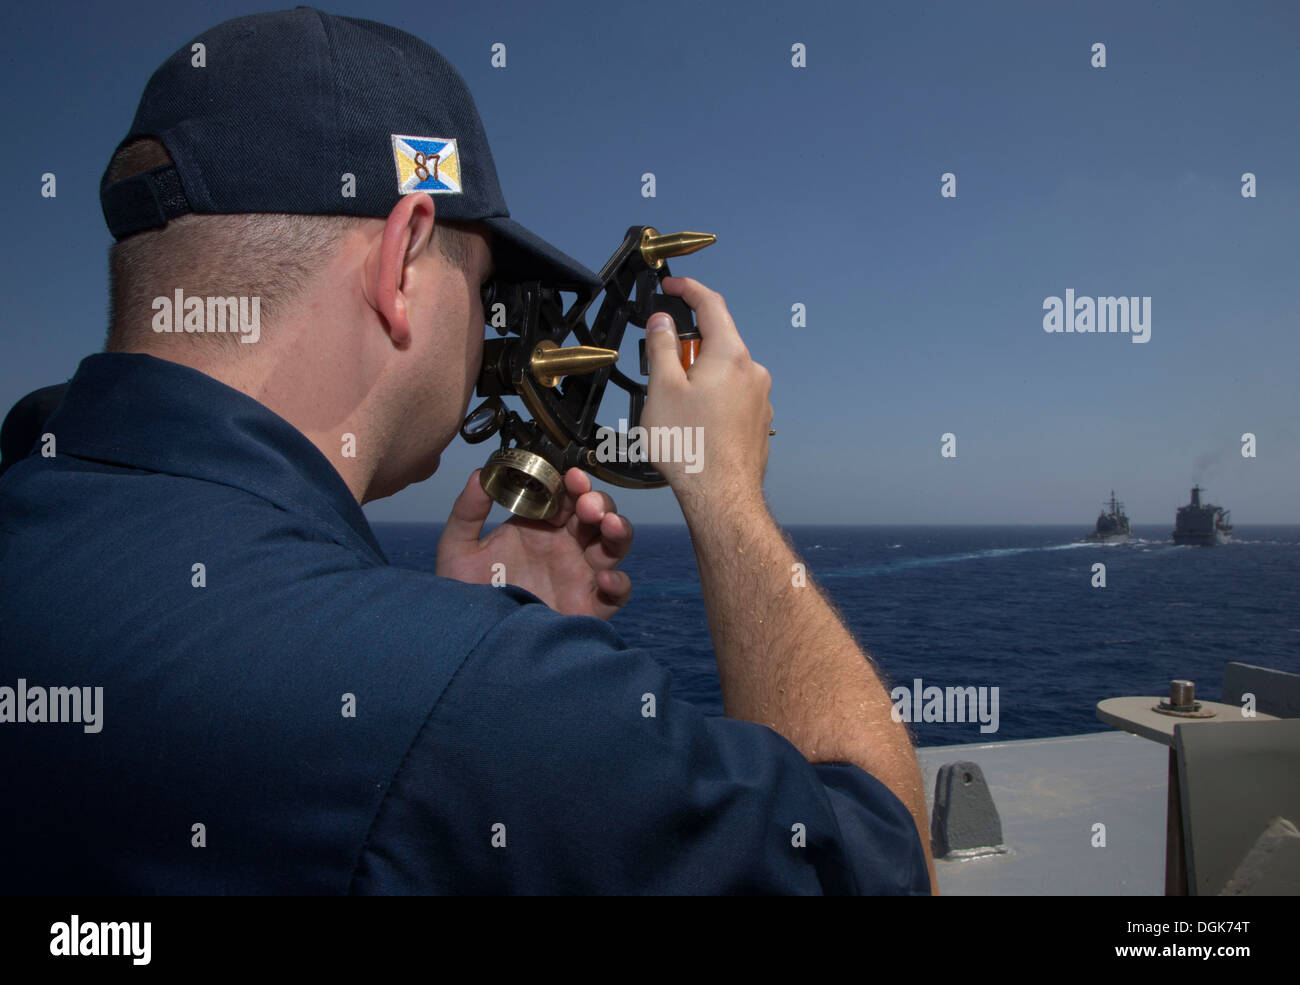 Lt. Matthew Parr uses a sextant aboard the guided-missile destroyer USS Mason (DDG 87) to measure distance while approaching the Military Sealift Command fleet replenishment oiler USNS Laramie (T-AO 203), right, and the guided-missile cruiser USS San Jaci - Stock Image